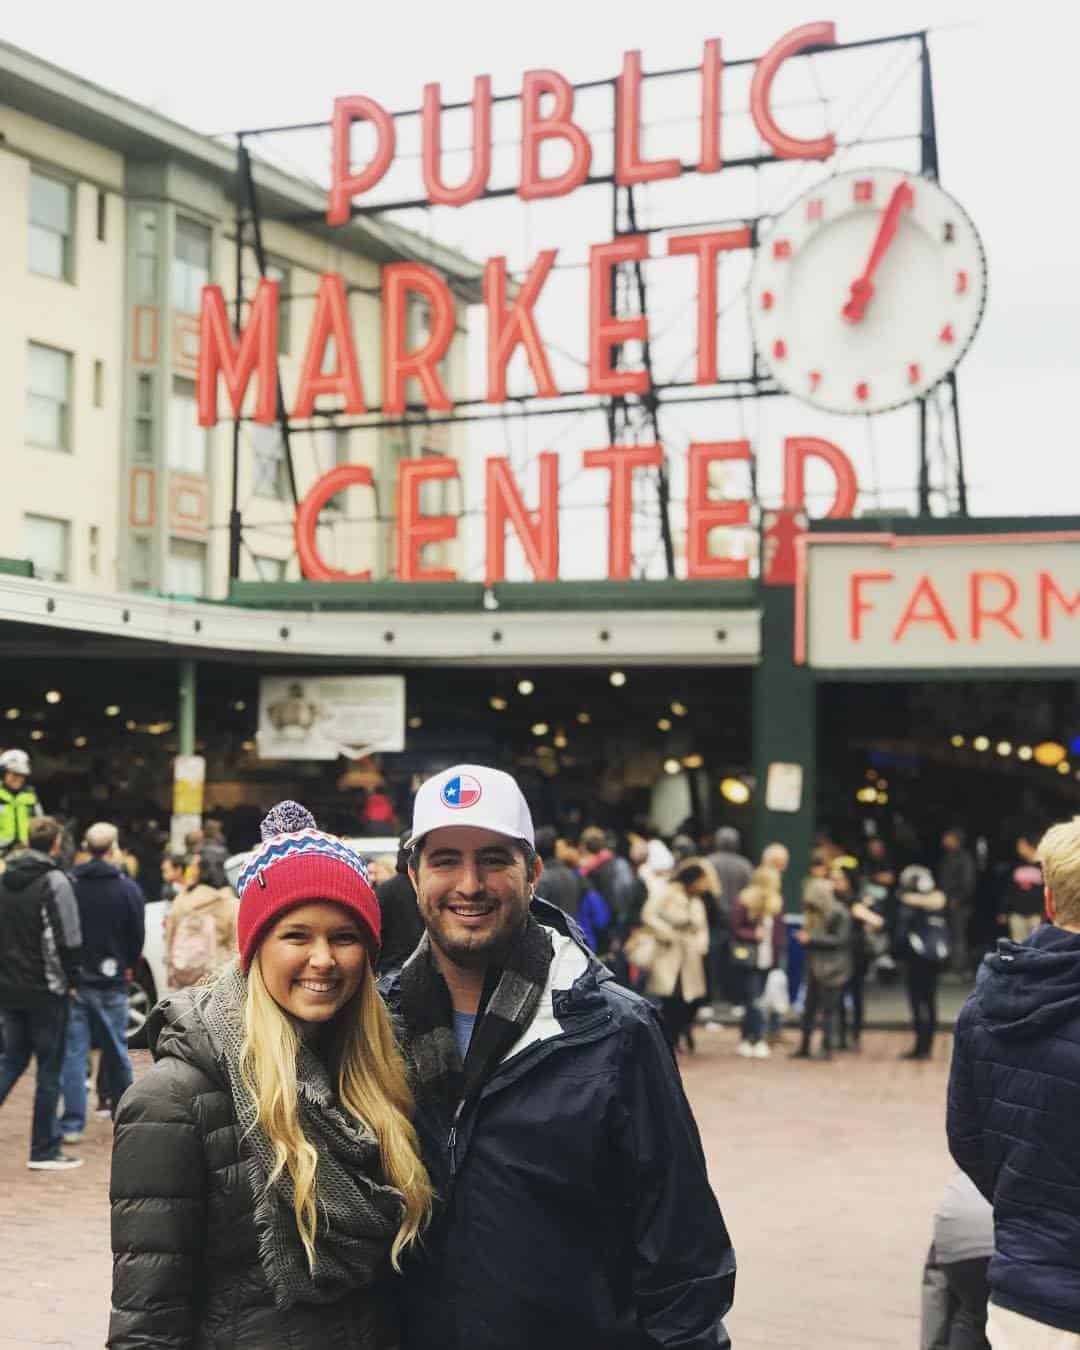 Jon and his wife, Meredith, during a trip to Seattle.